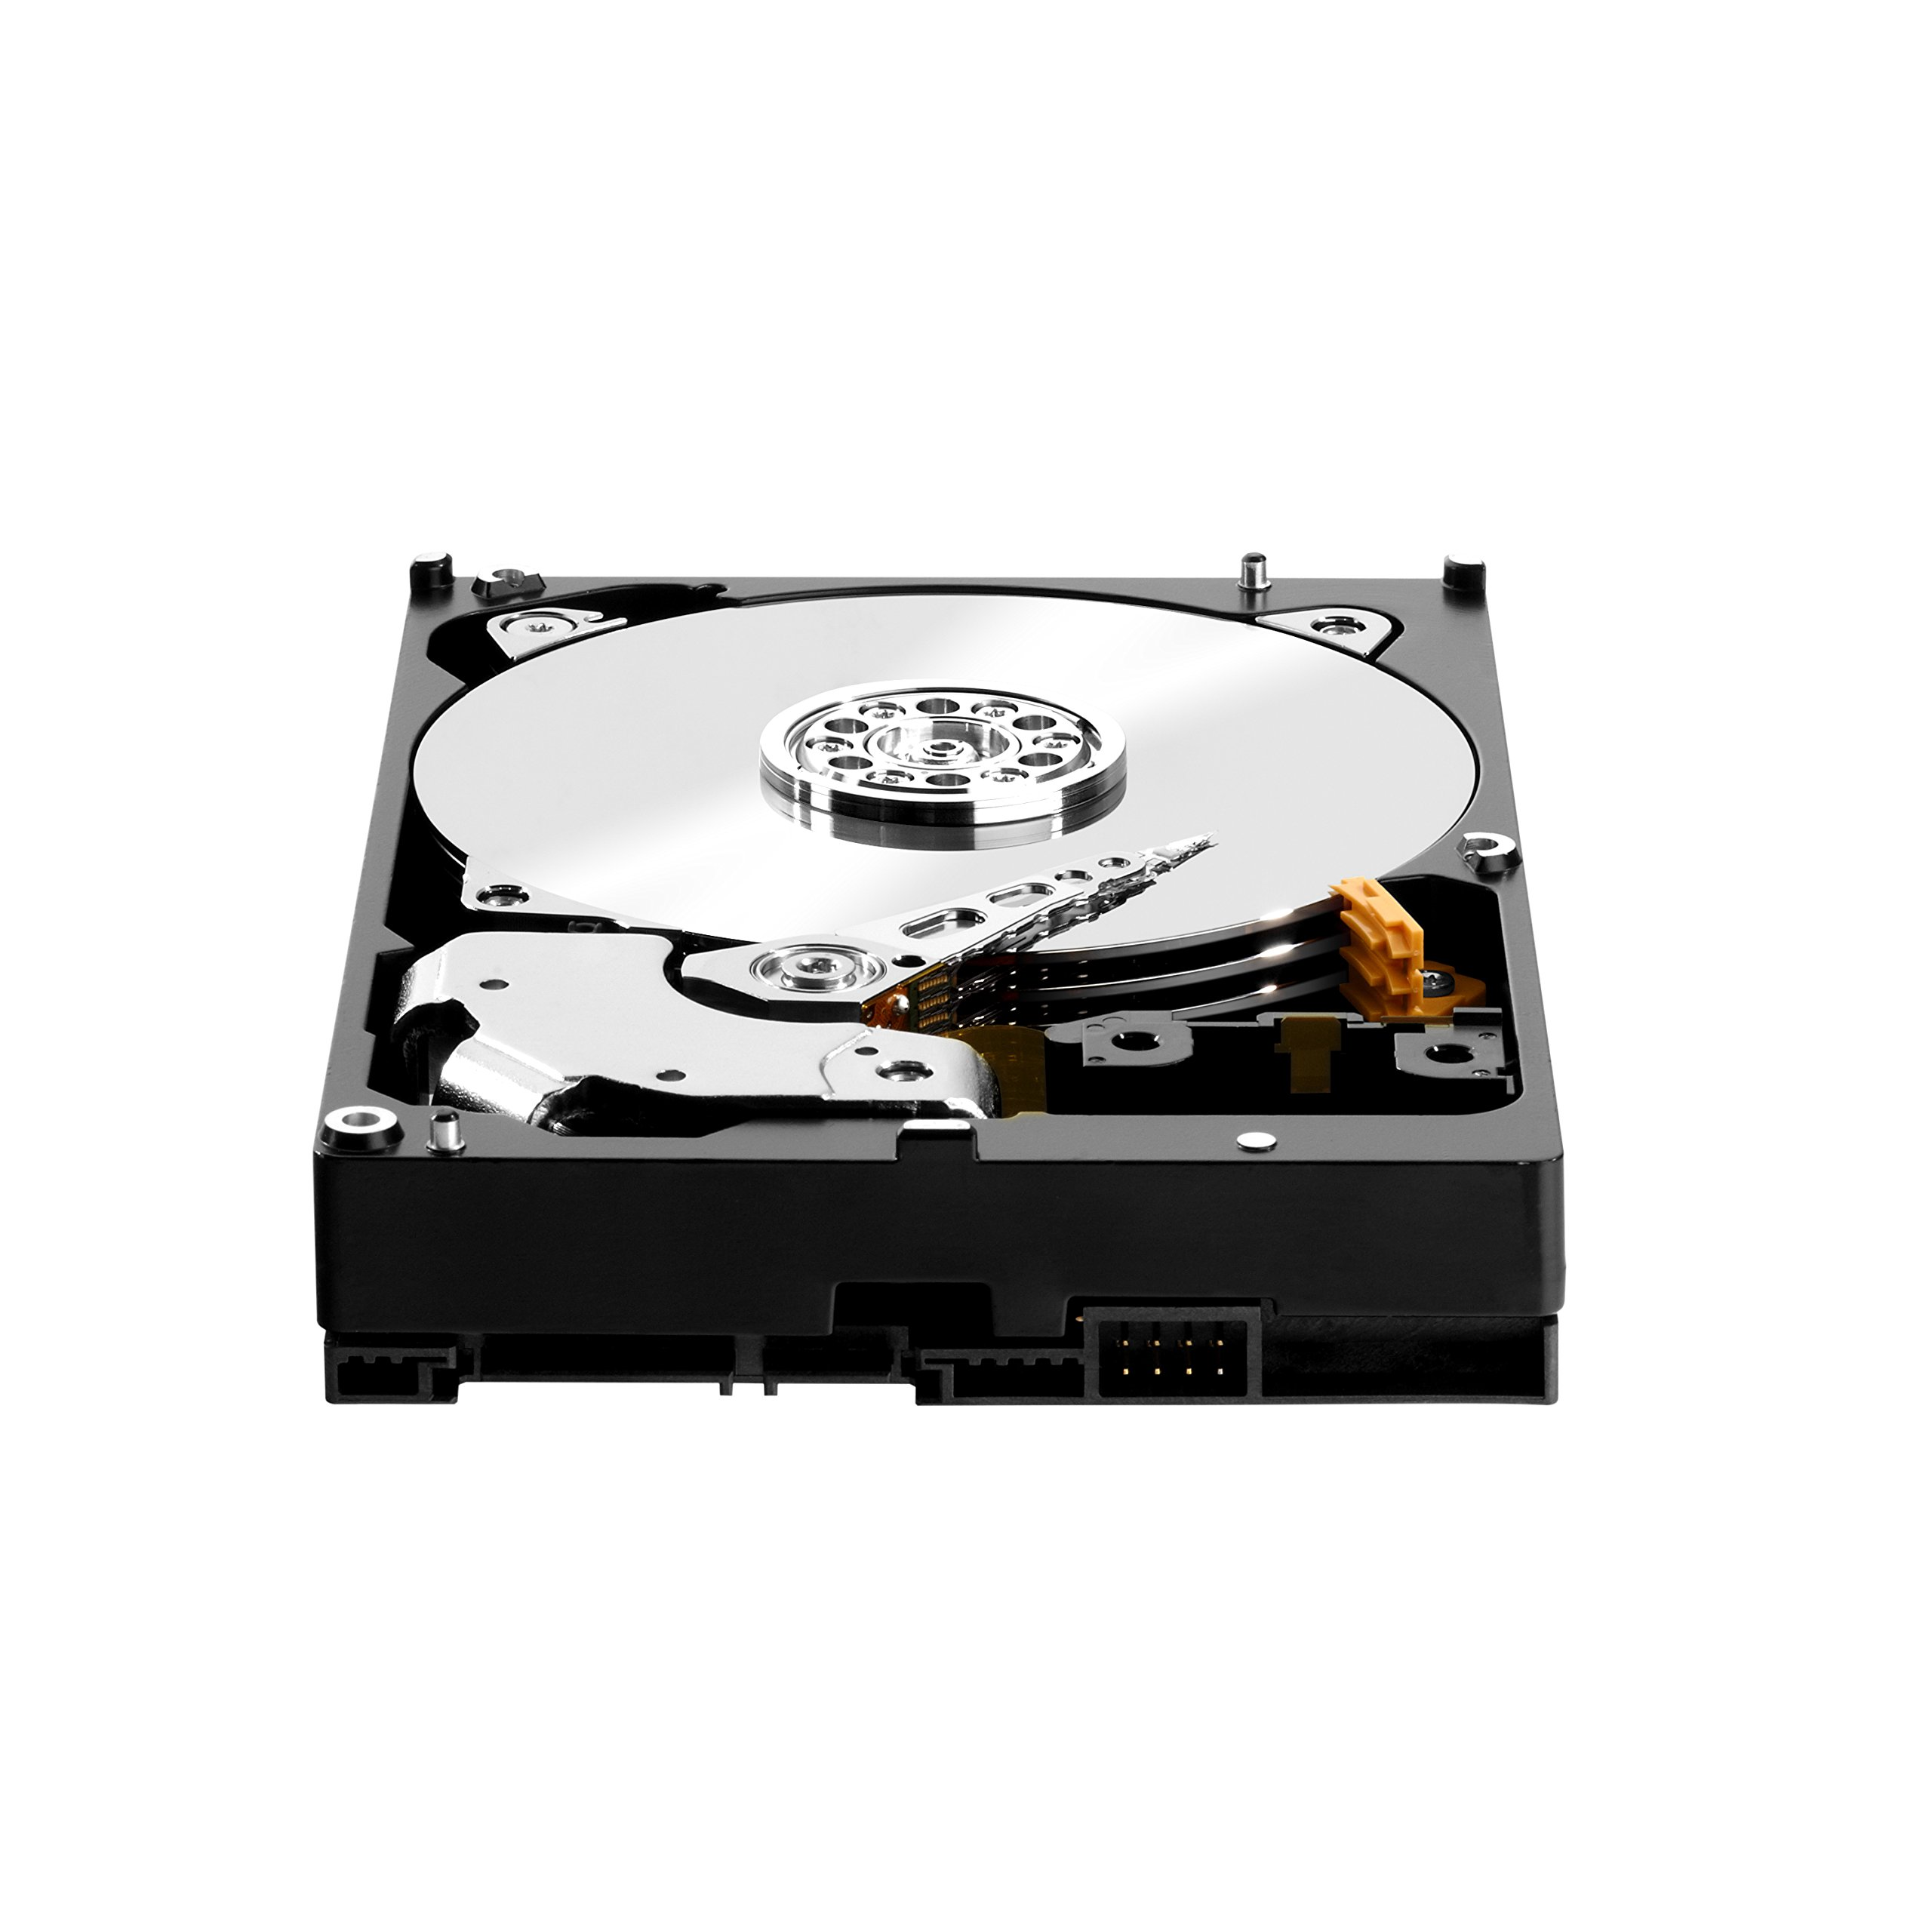 WD Red 6TB NAS Internal Hard Drive - 5400 RPM Class, SATA 6 GB/S, 256MB Cache, 3.5'' - WD60EFAX by Western Digital (Image #6)